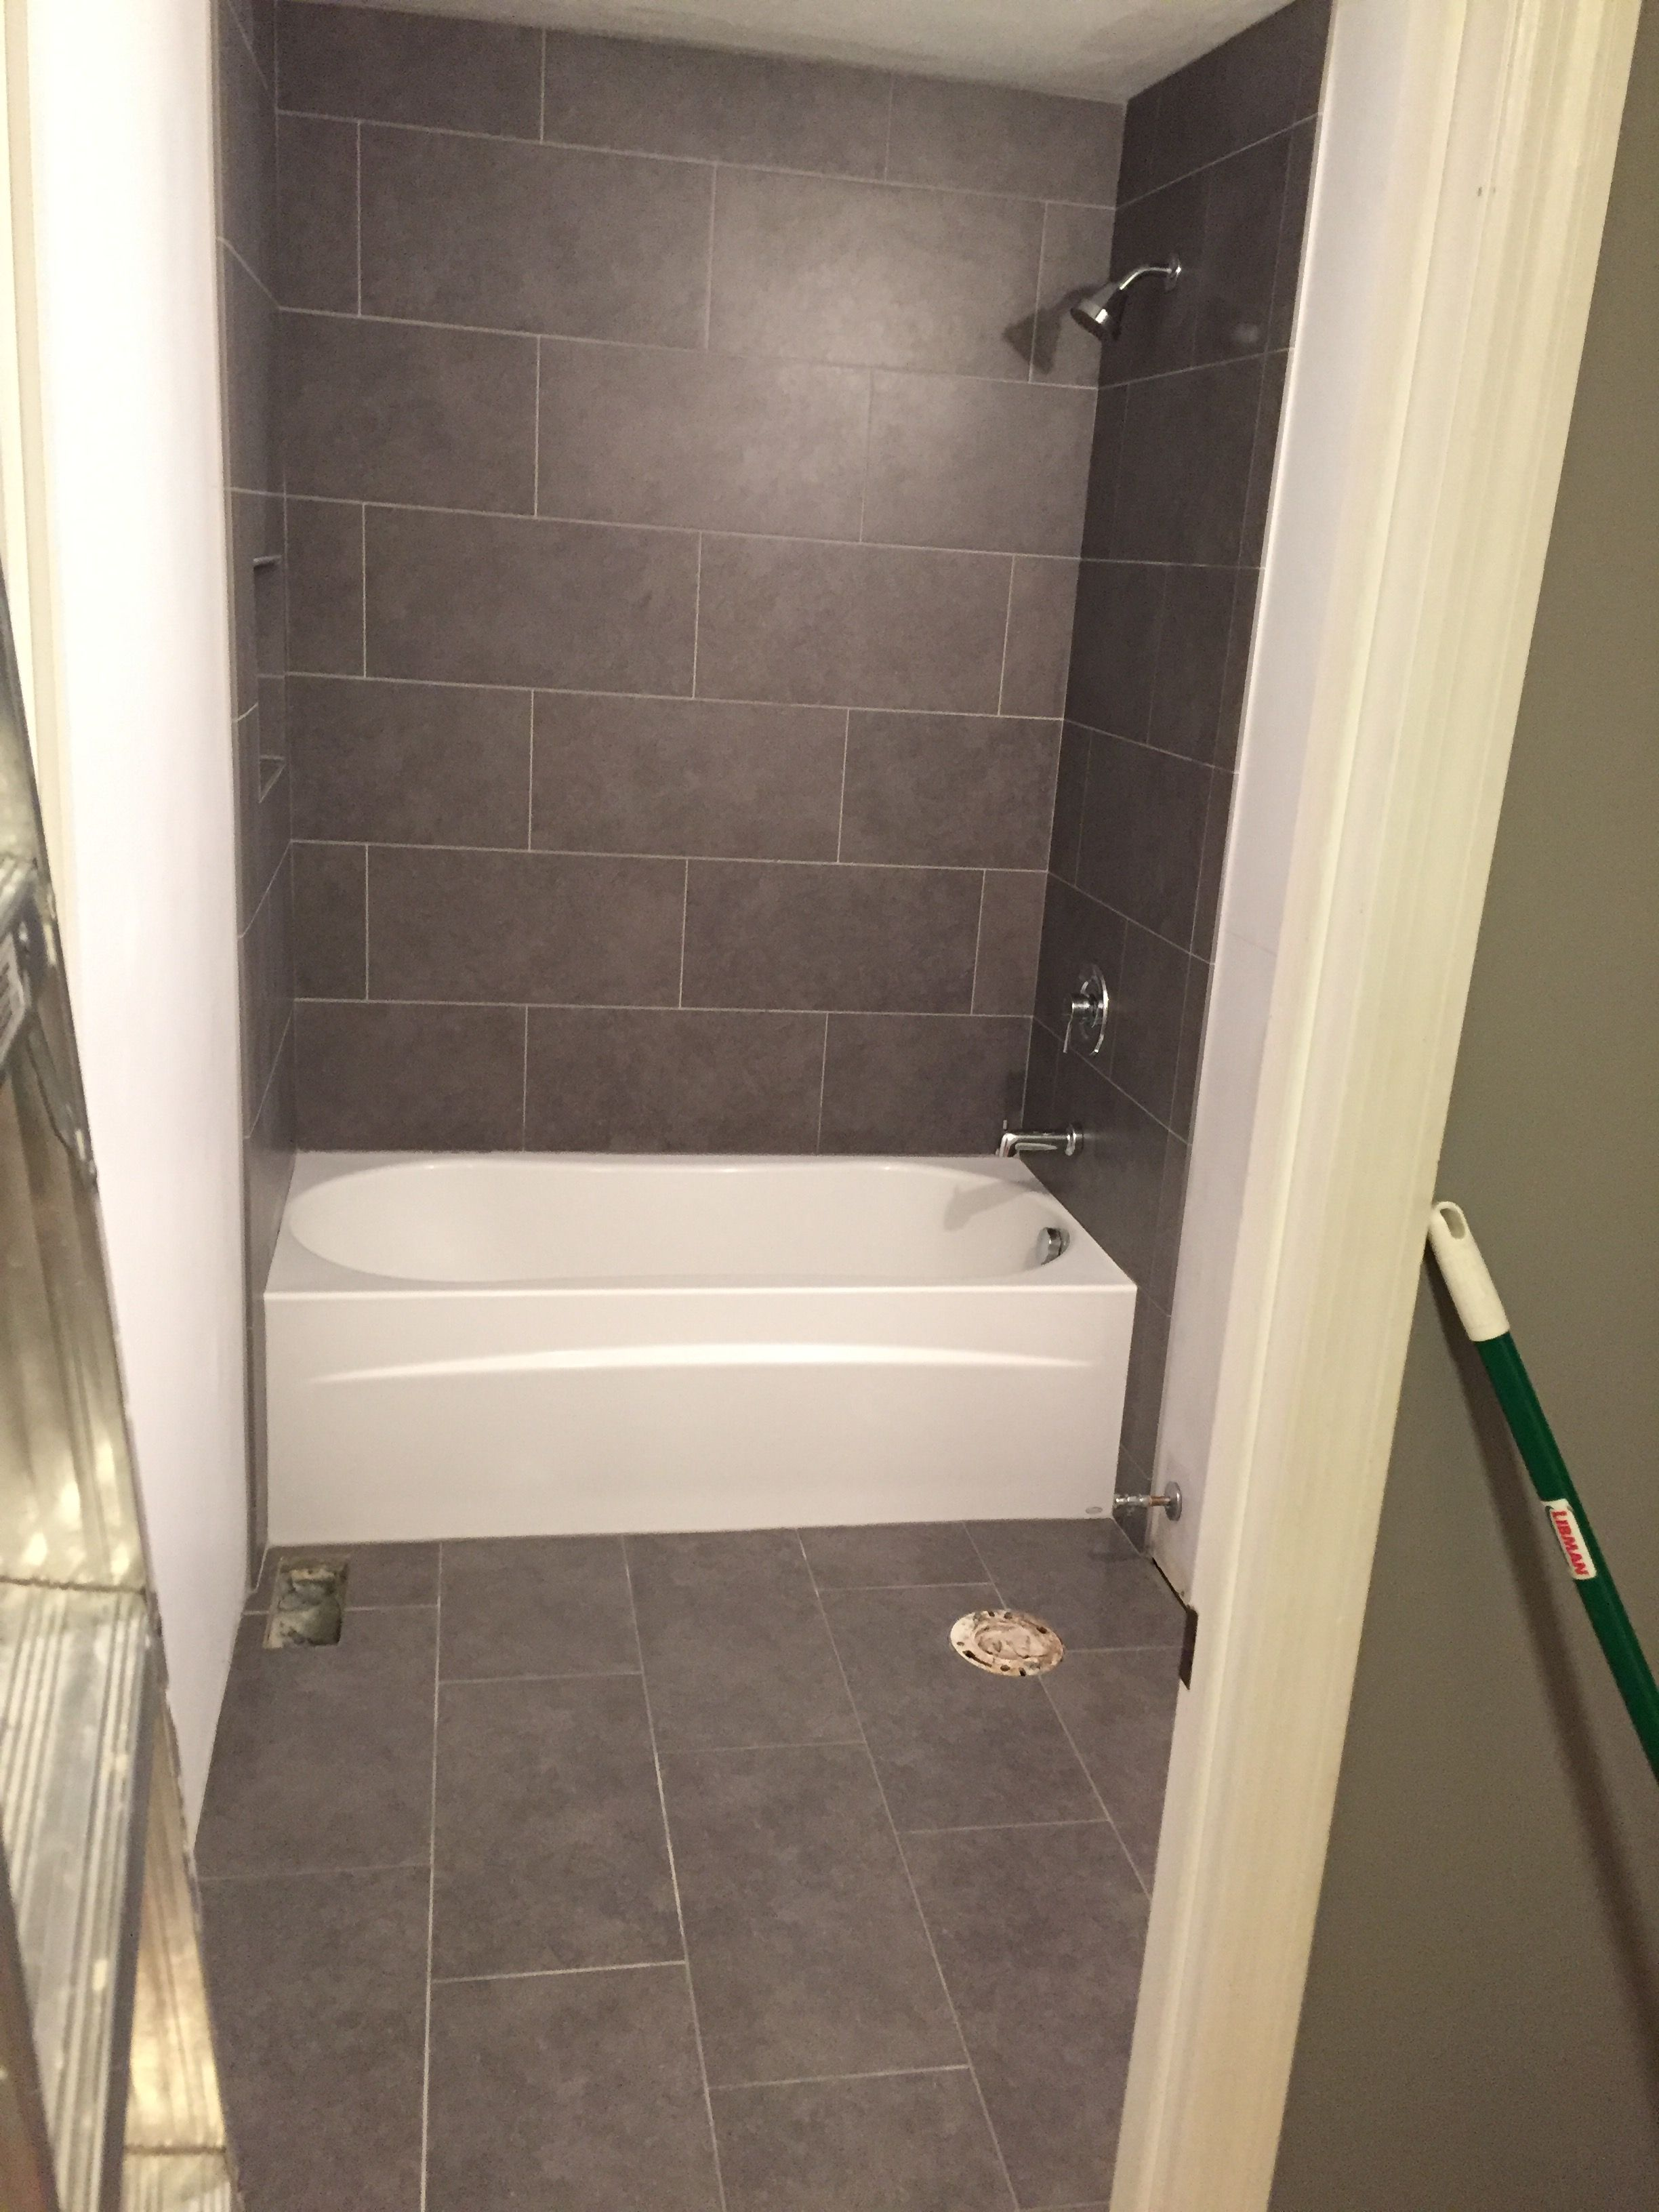 Lowe's mitte gray tile 12x24 bathroom tub surround and ...